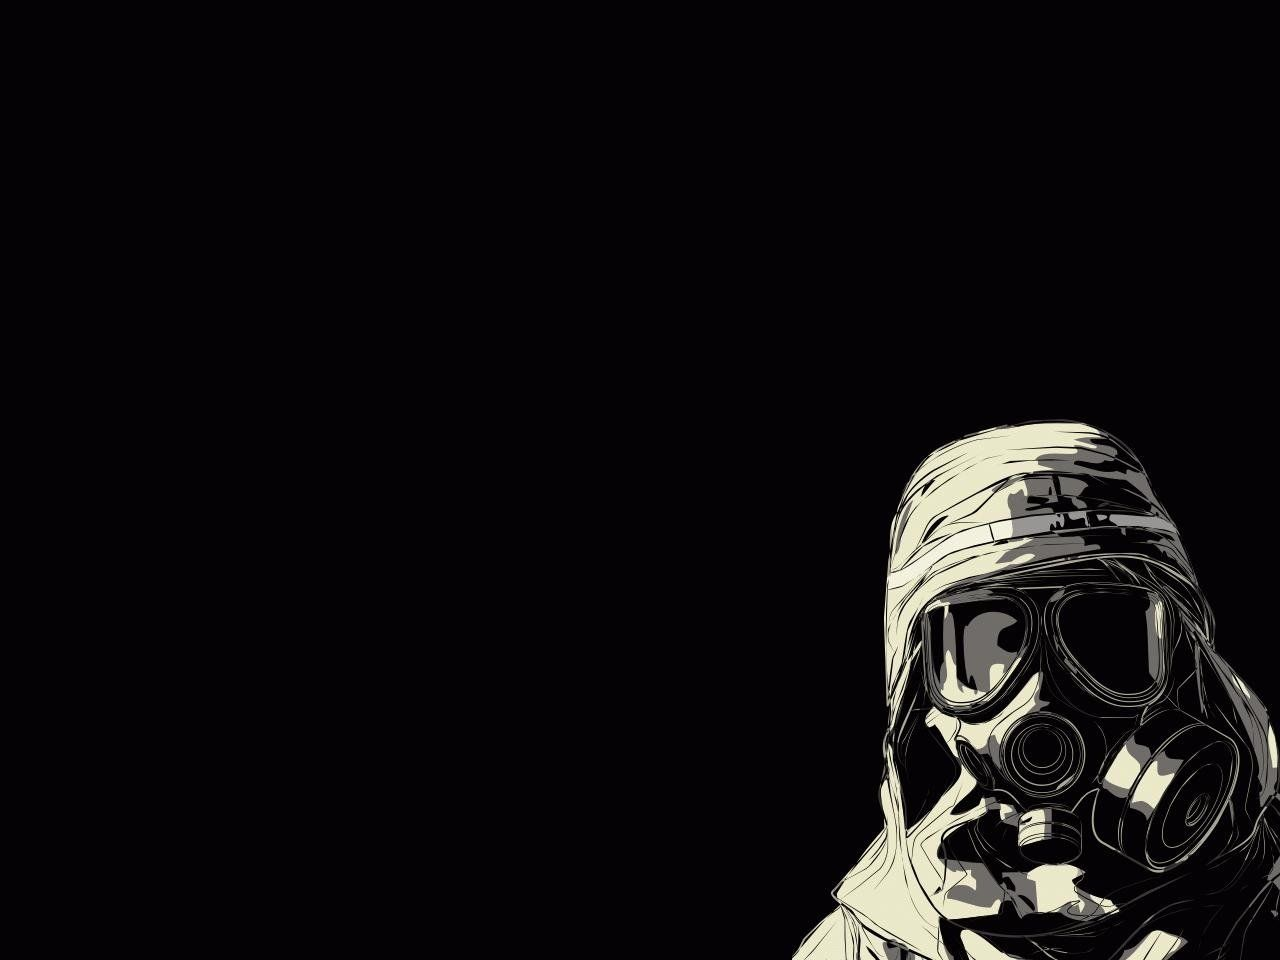 gas mask art hd desktop wallpaper high definition mobile hd